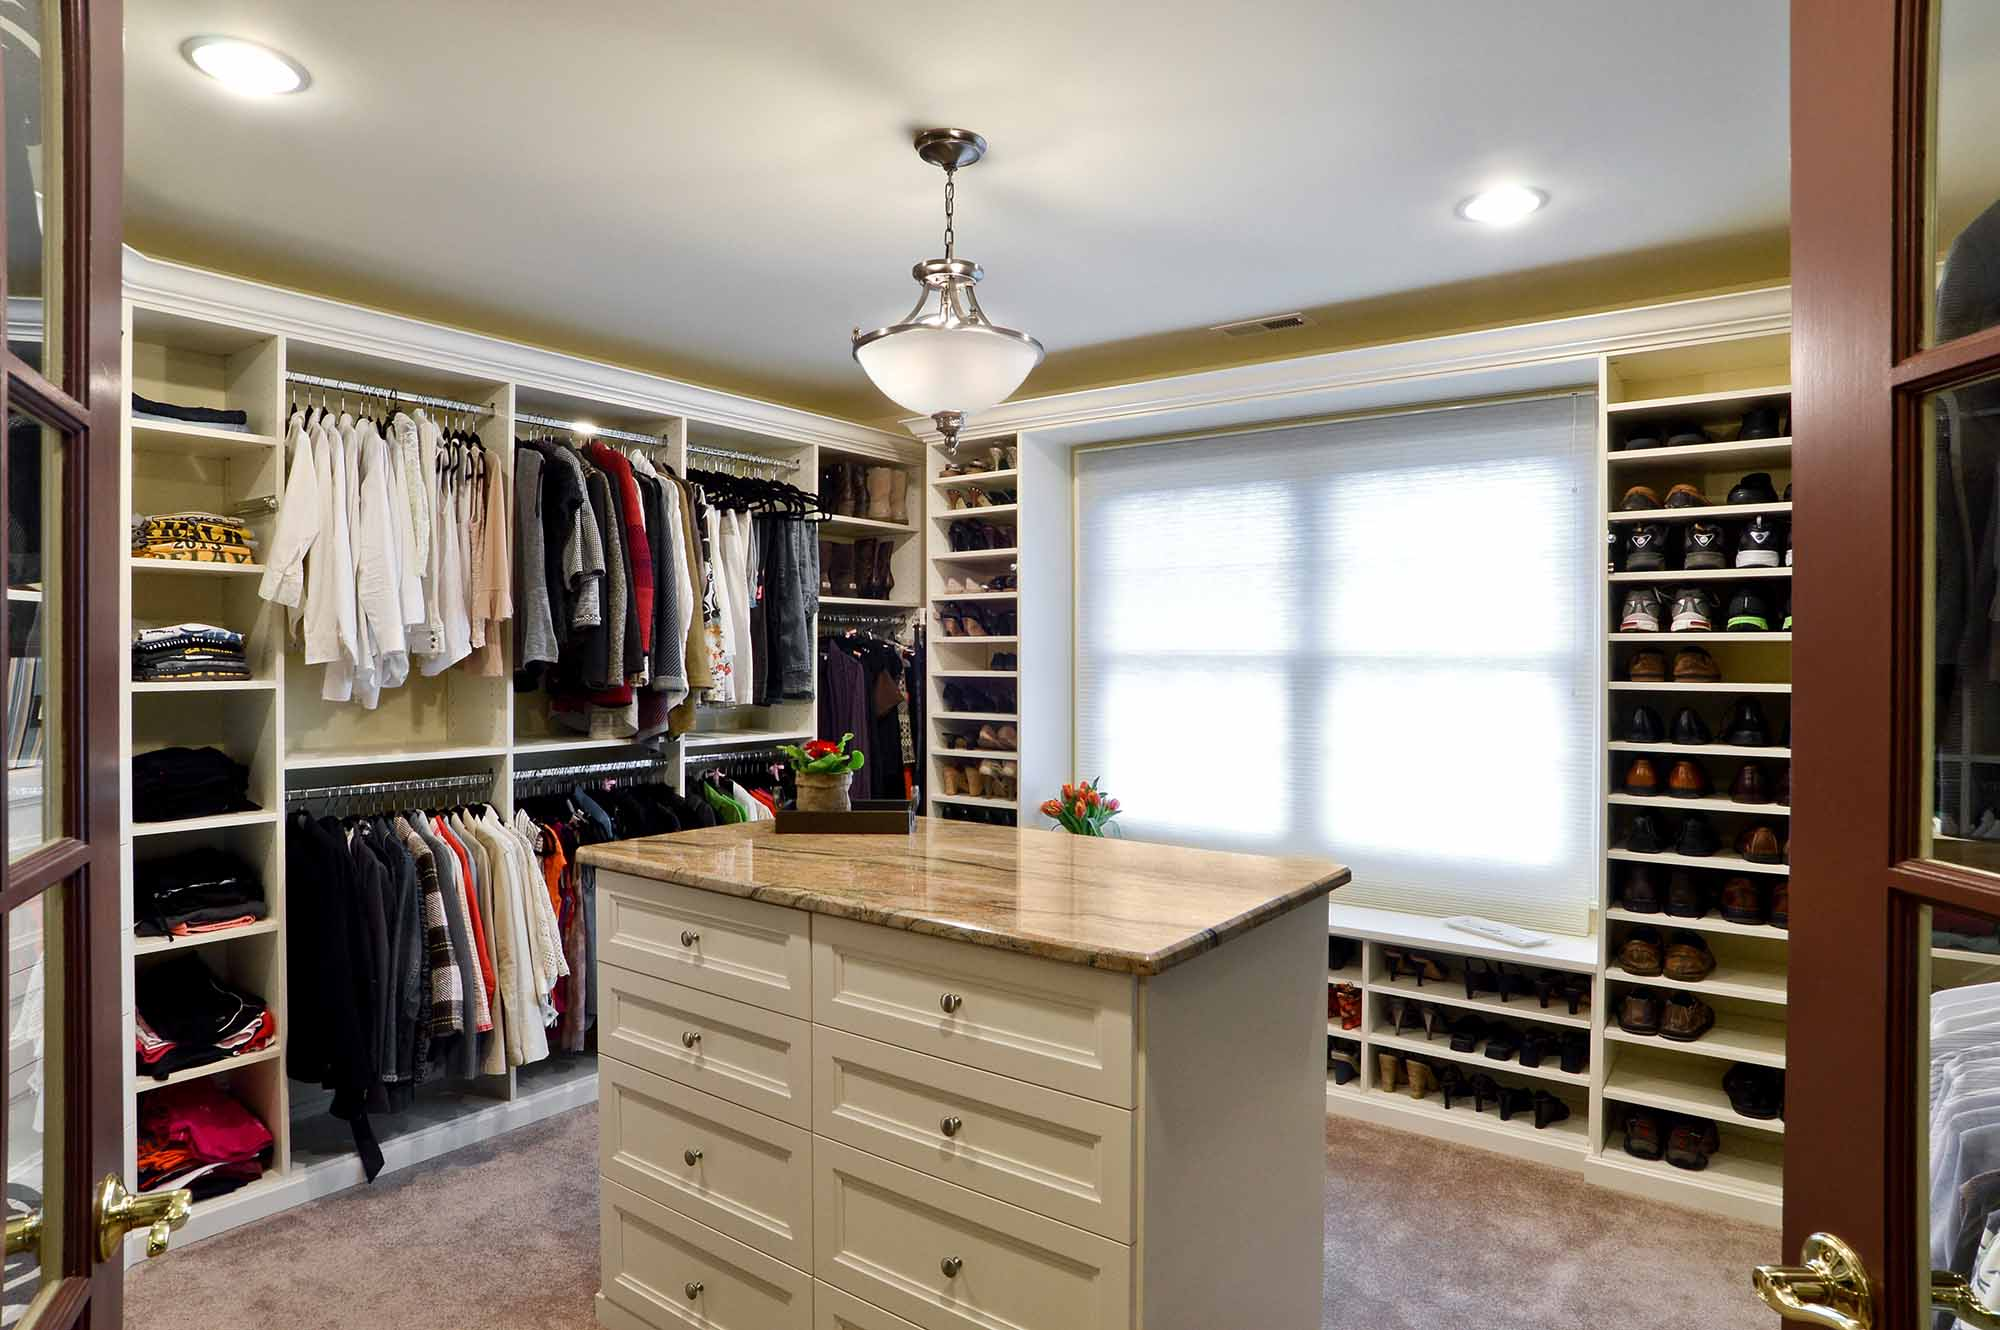 Declutter In A Snap: 9 Simple Ideas To Thin Out Your Closet